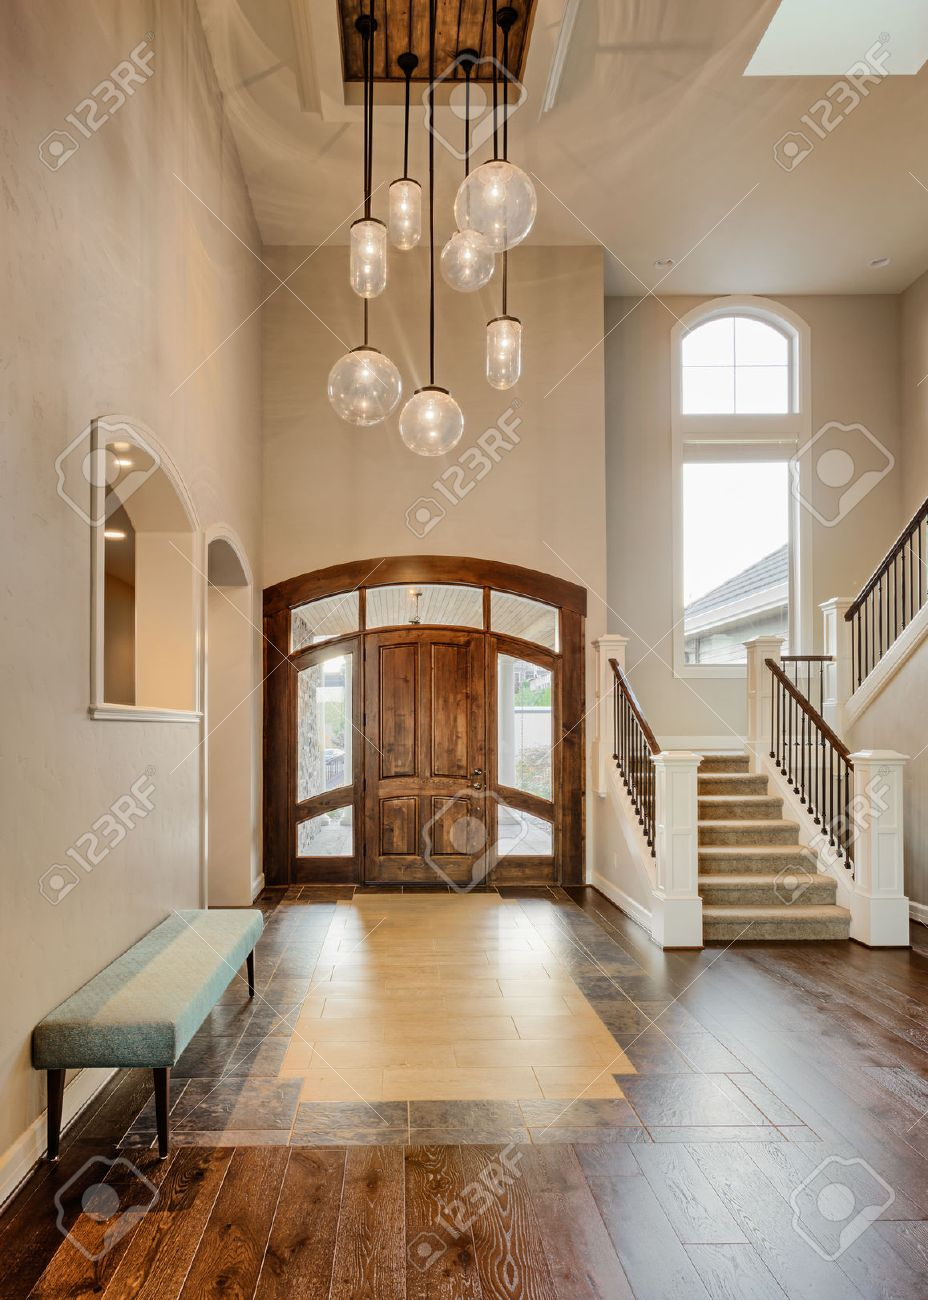 pendant lighting for sloped ceilings beautiful foyer in home entryway with stairs pendant lights hardwood floor ceiling lights middot mid century